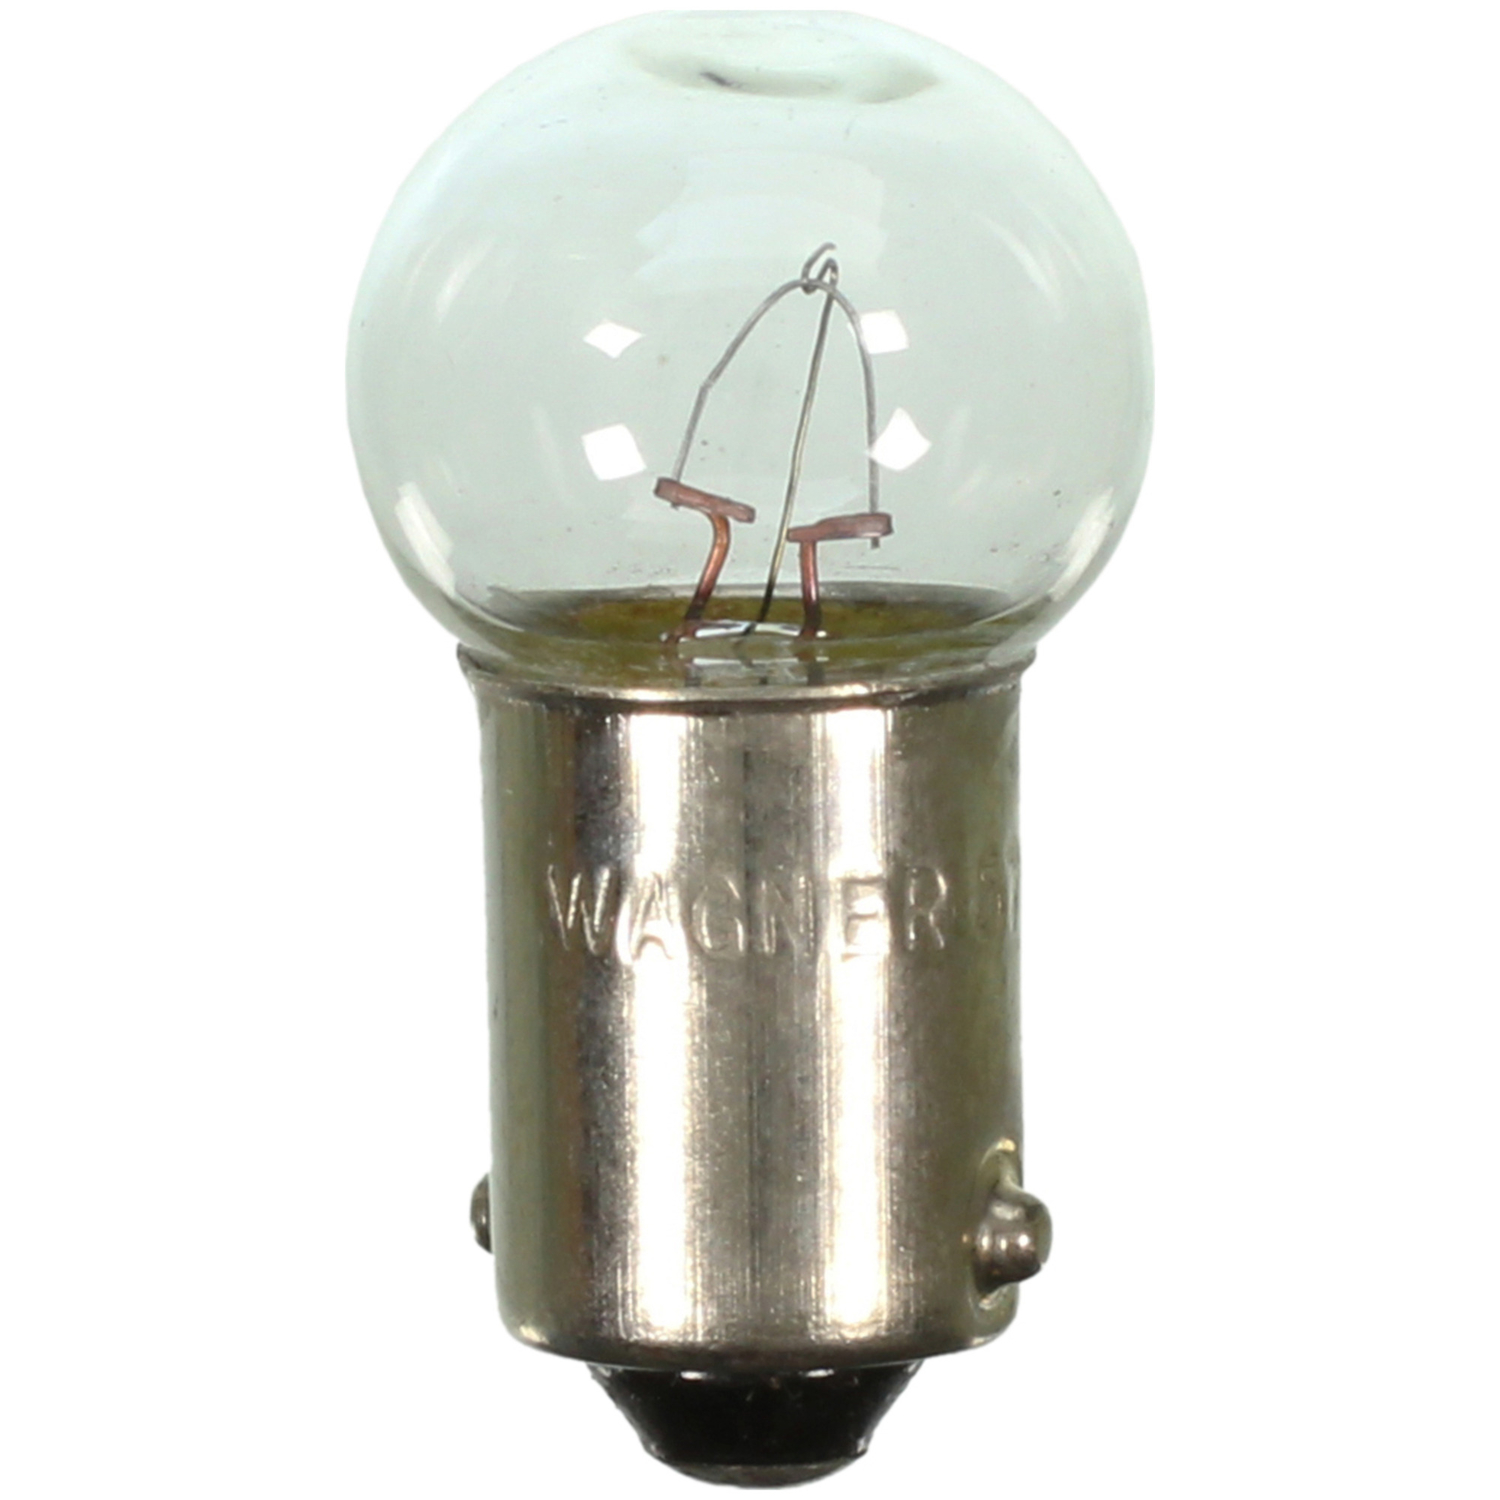 WAGNER LIGHTING - Instrument Panel Light Bulb - WLP 57